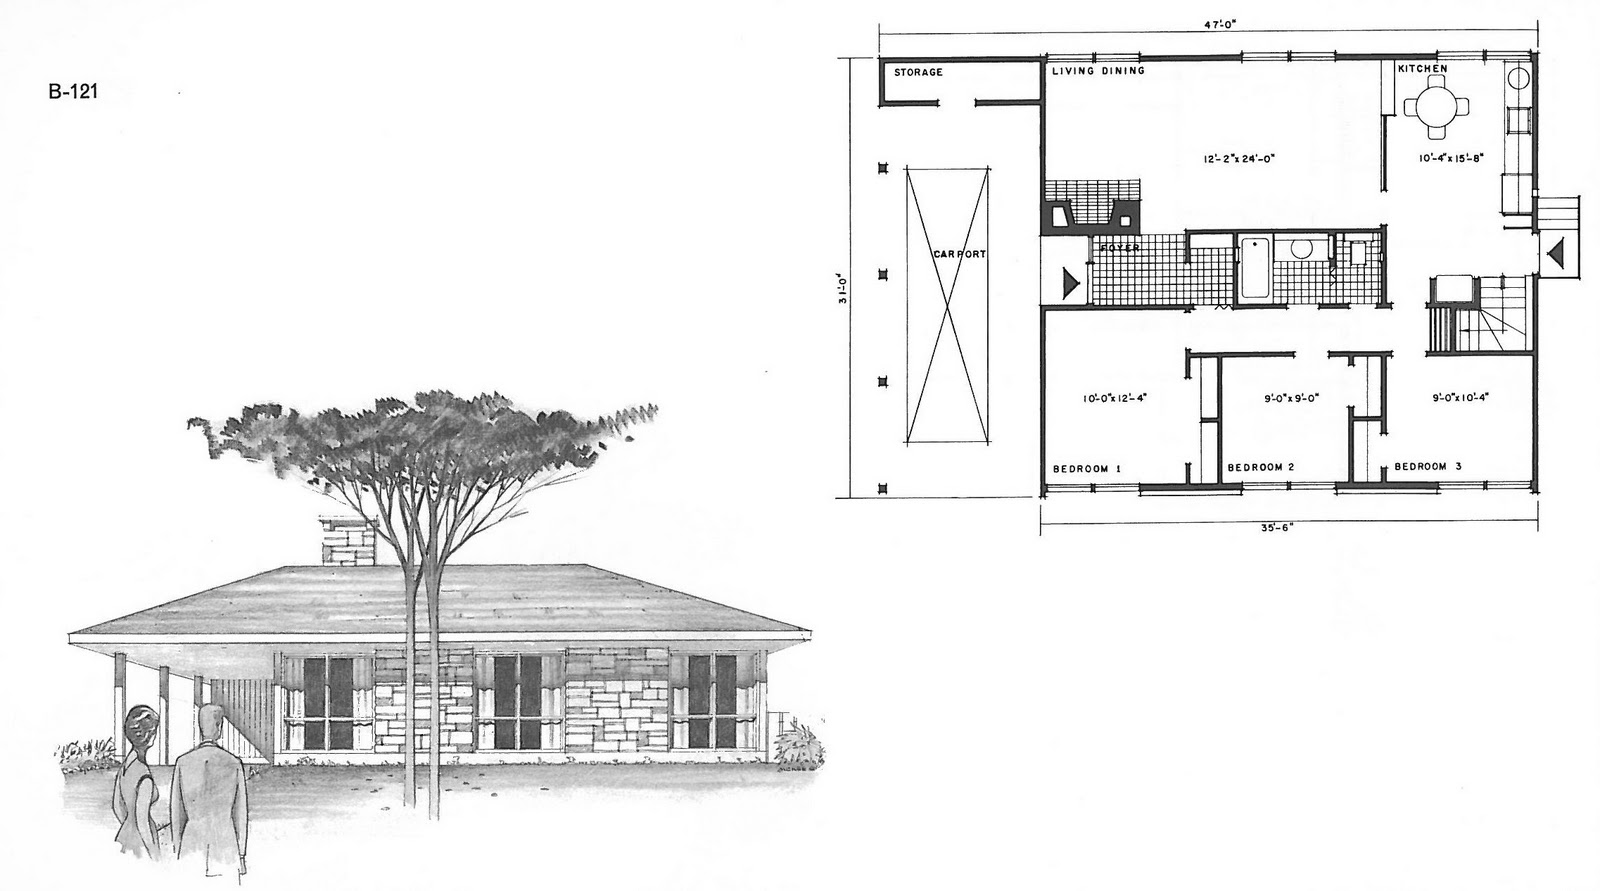 living and bedroom spaces reversed. The exterior design is strikingly title=